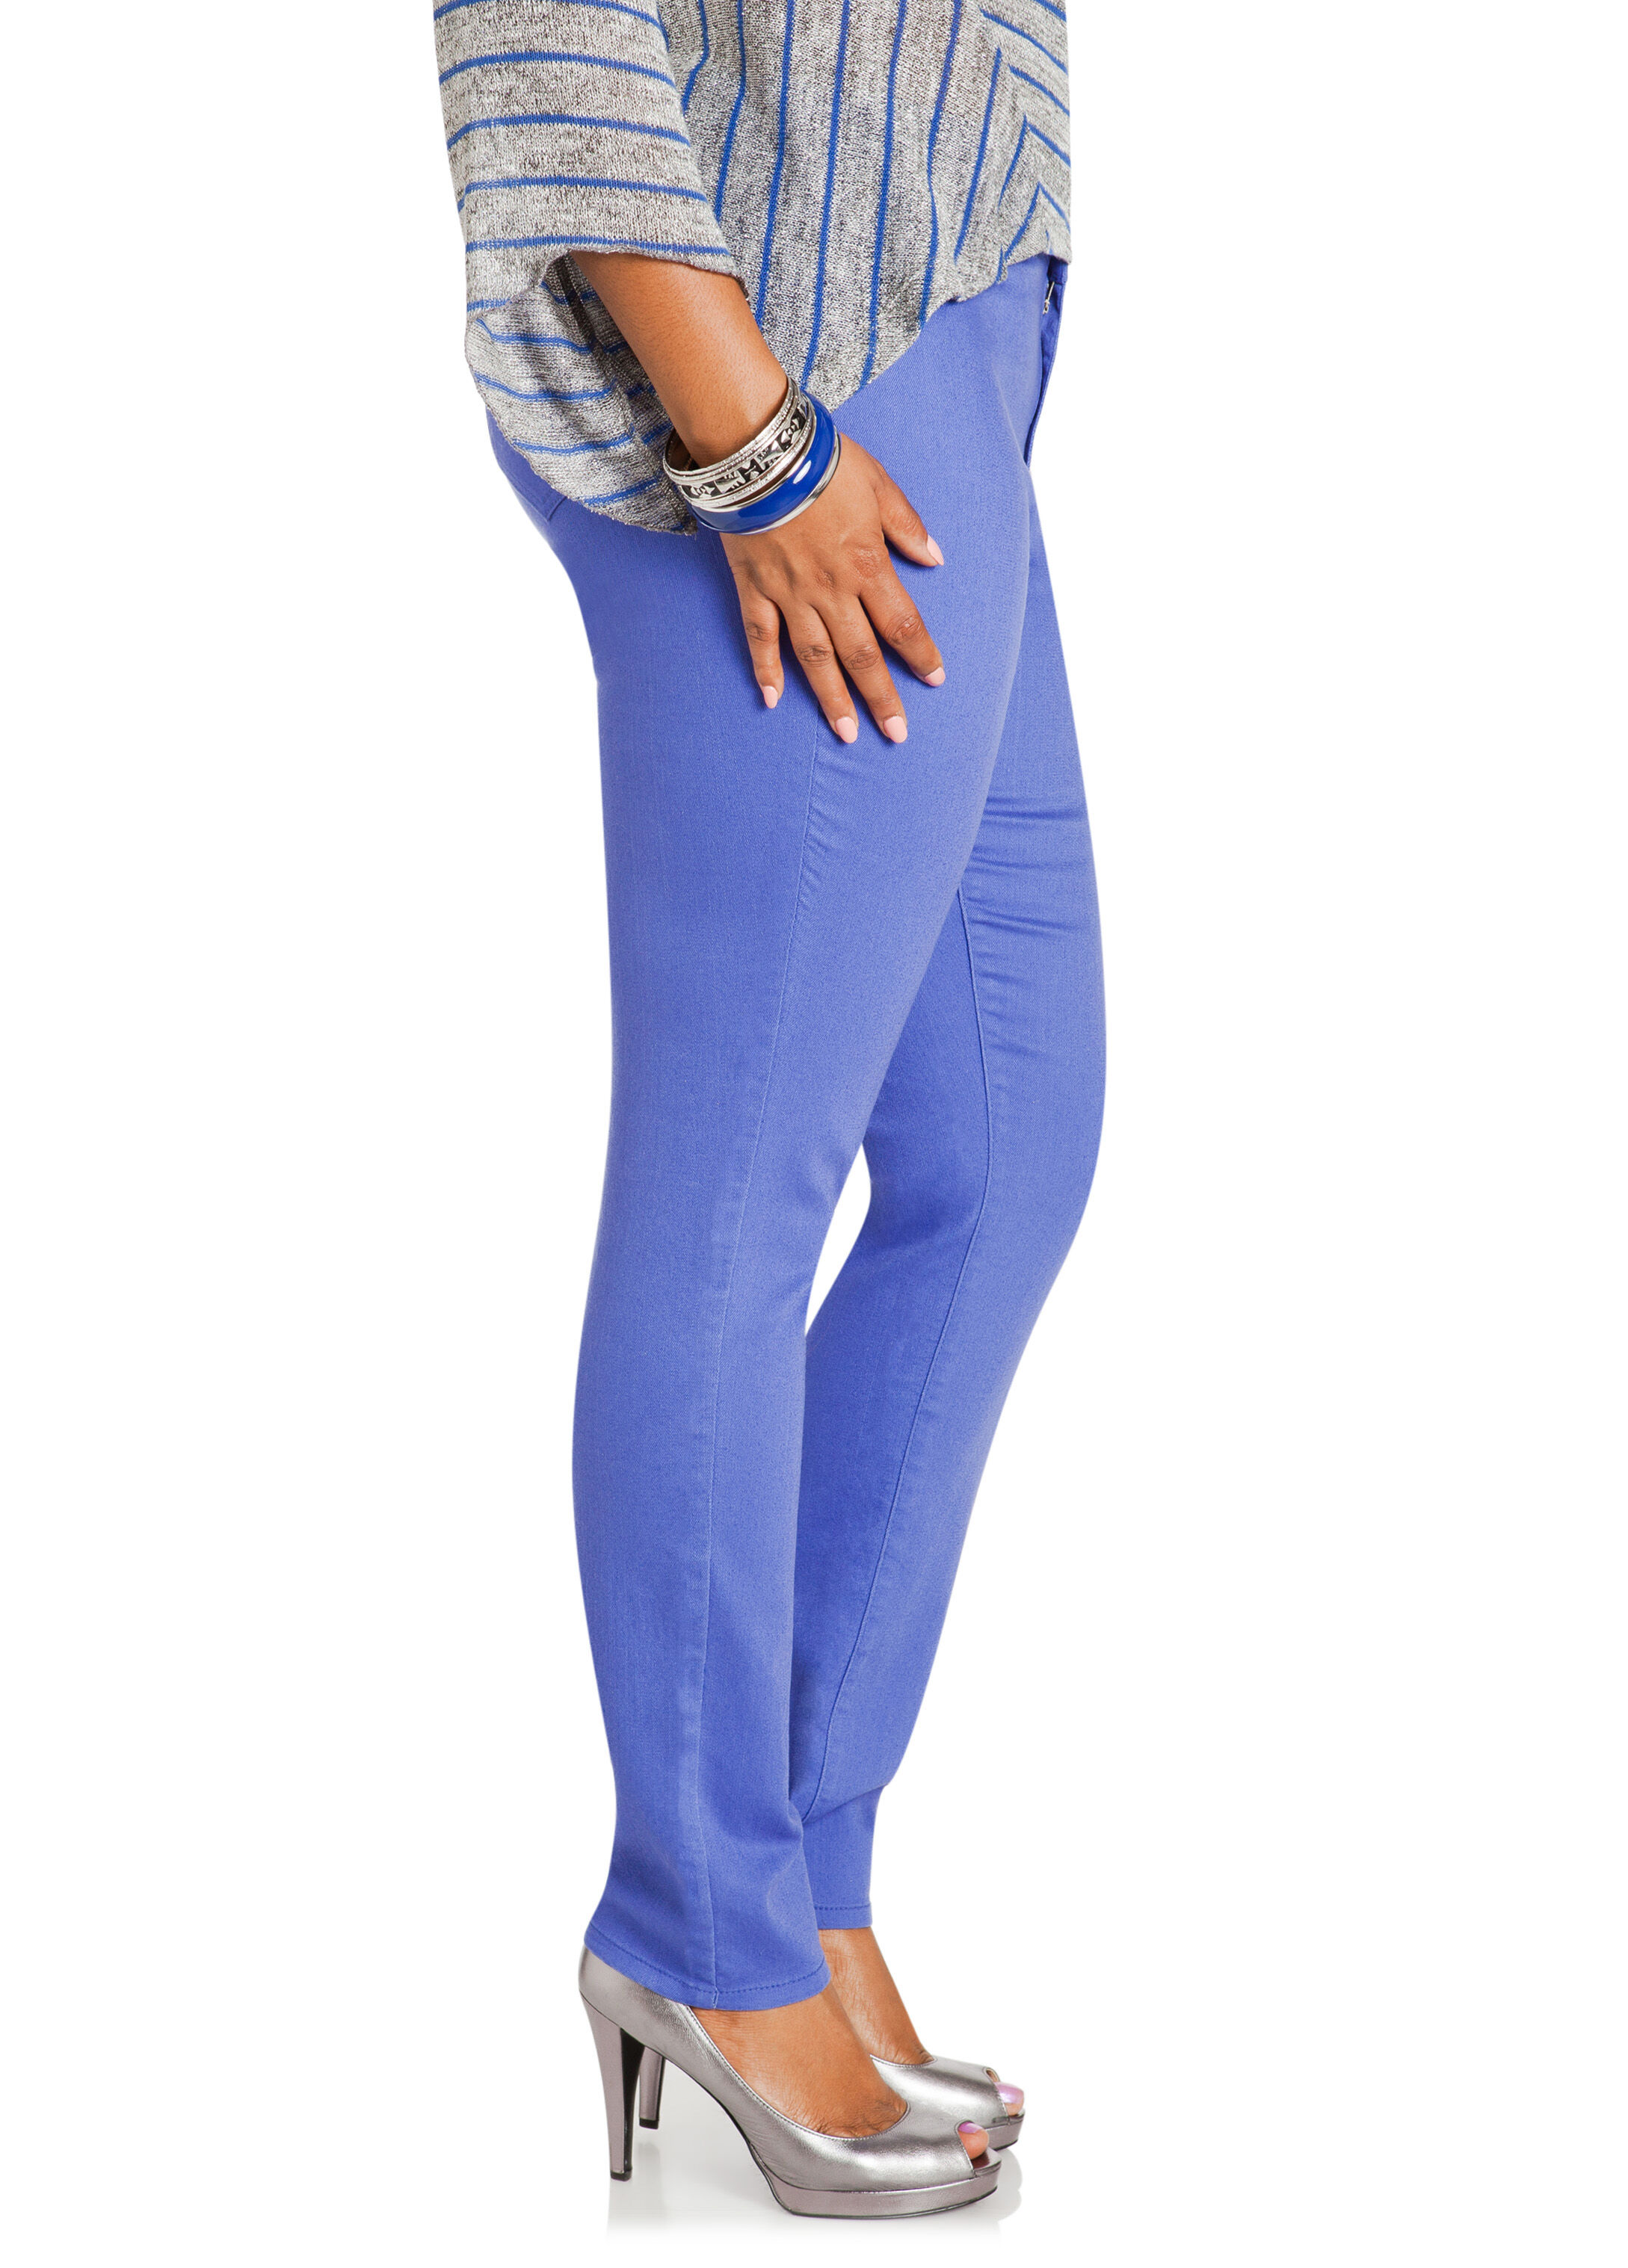 Batiki Blue Jeggings